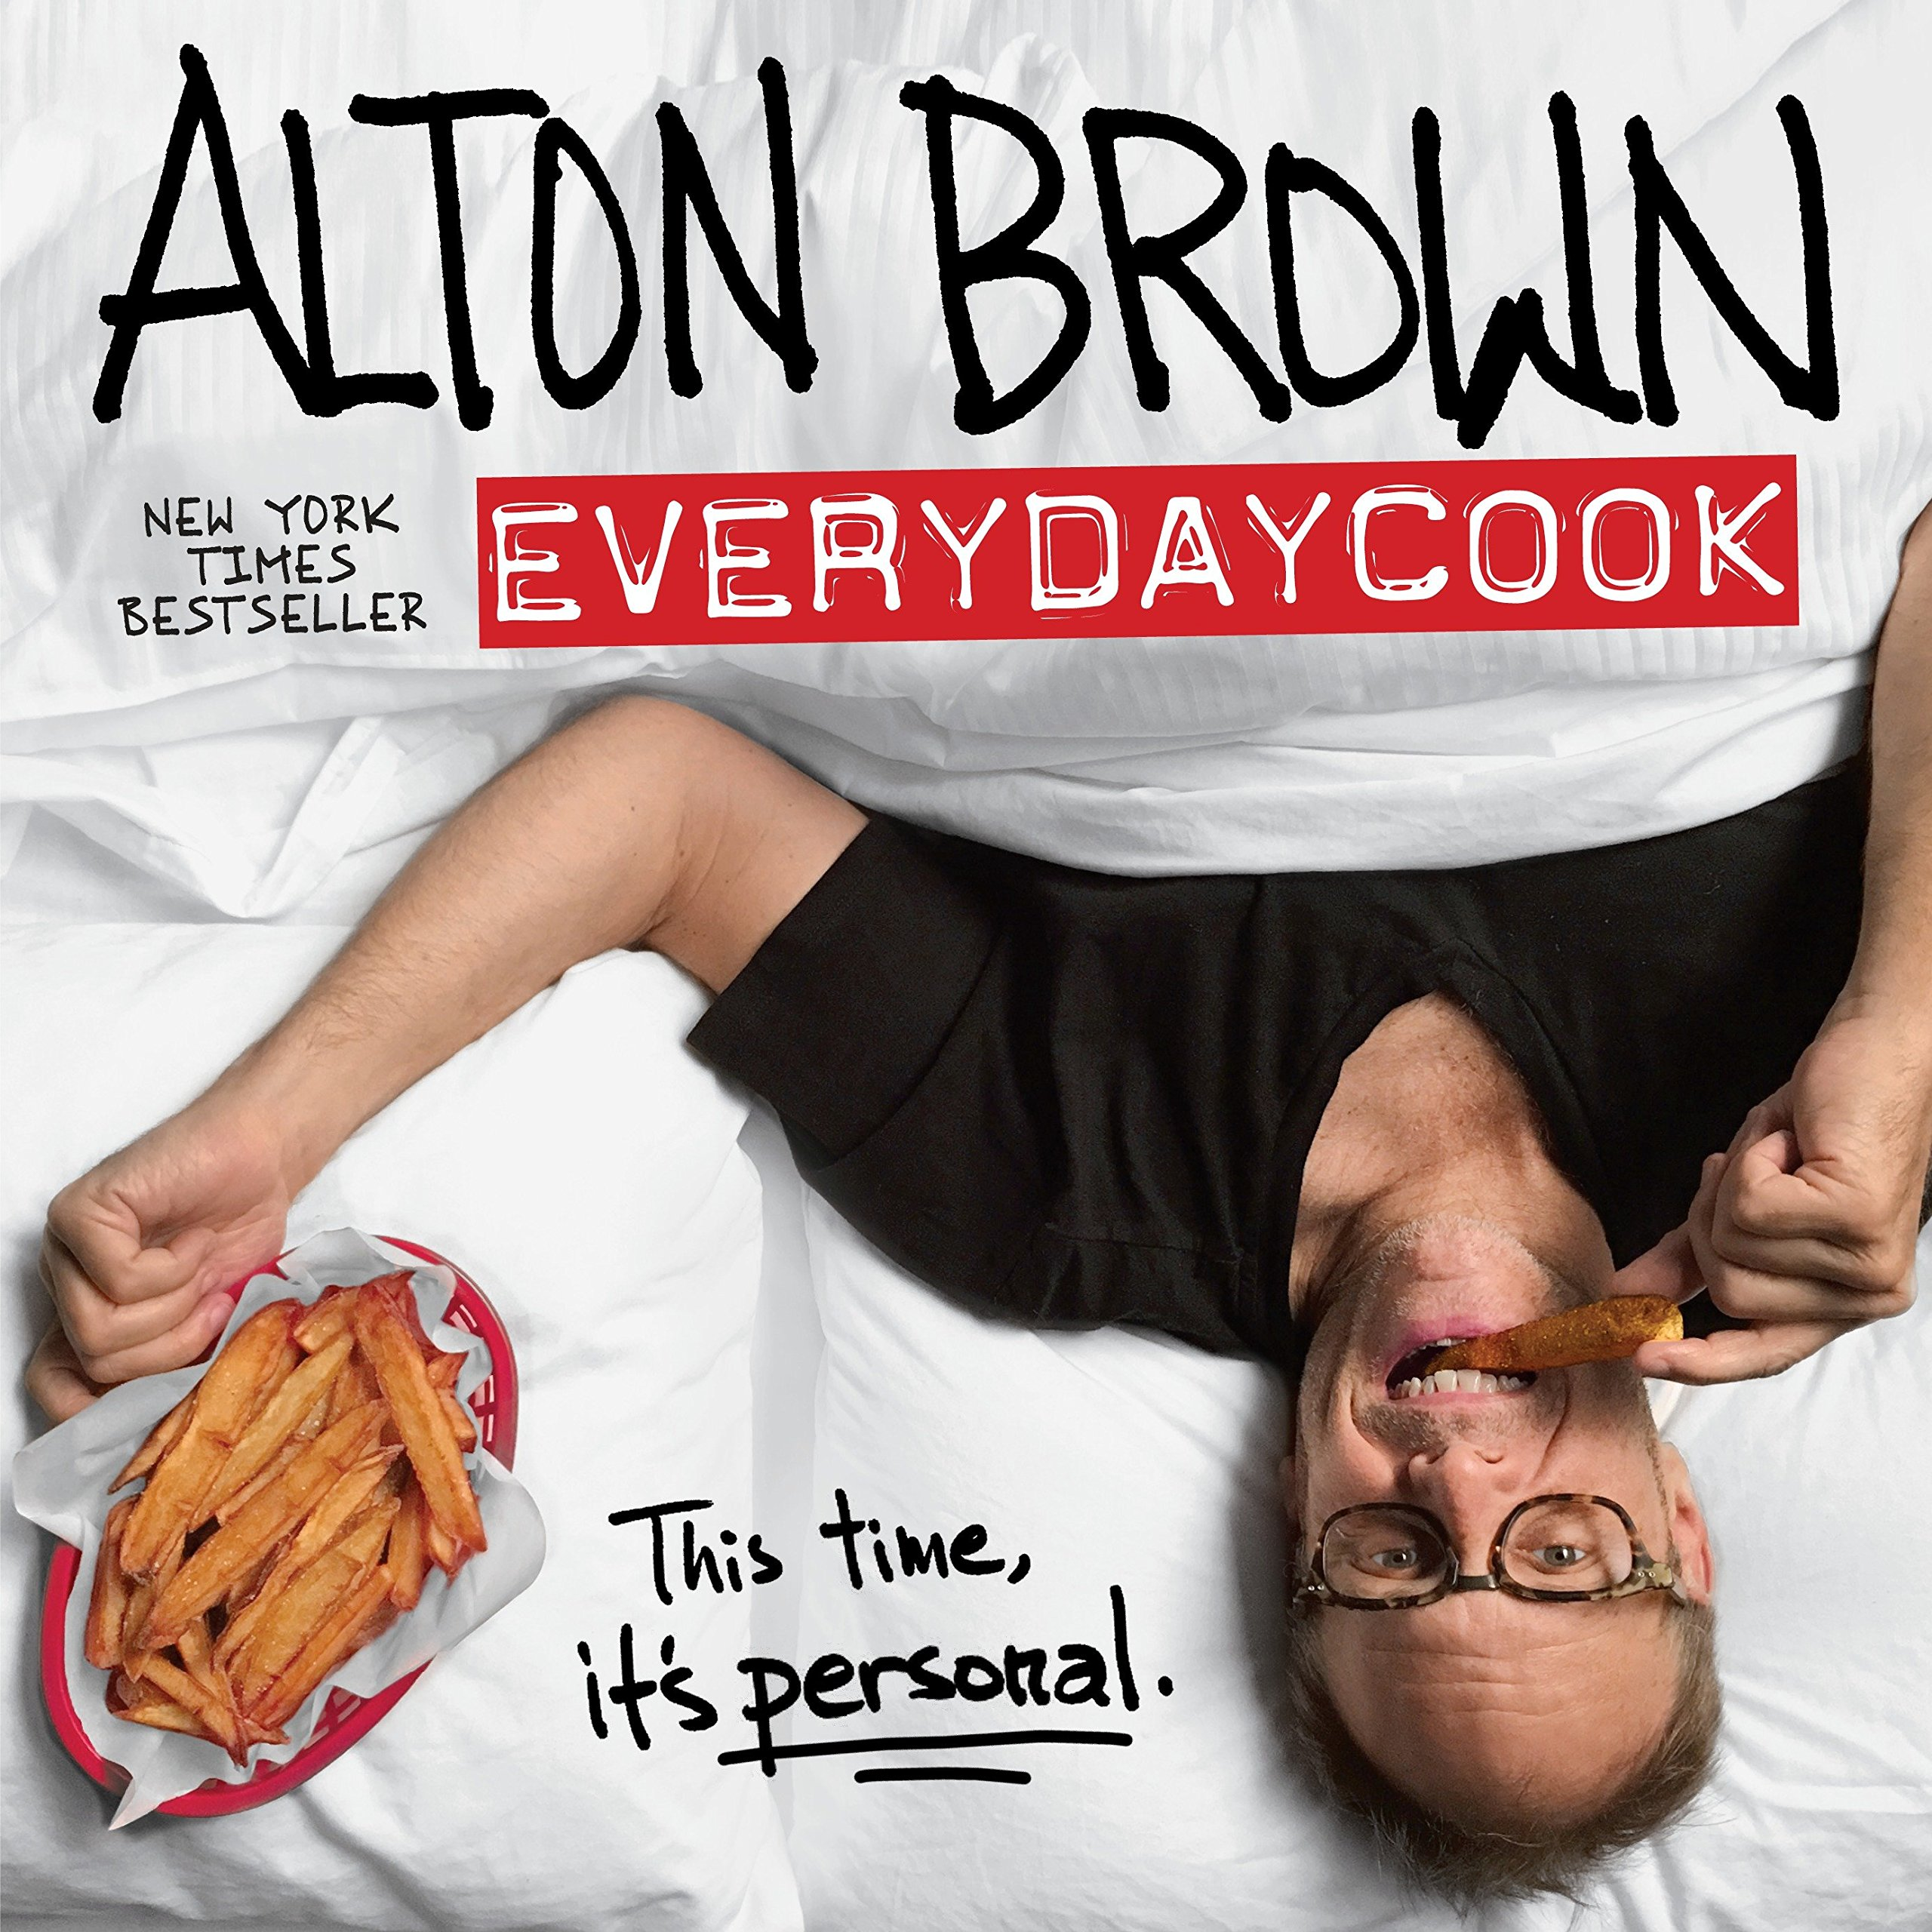 alton brown everydaycook a cookbook